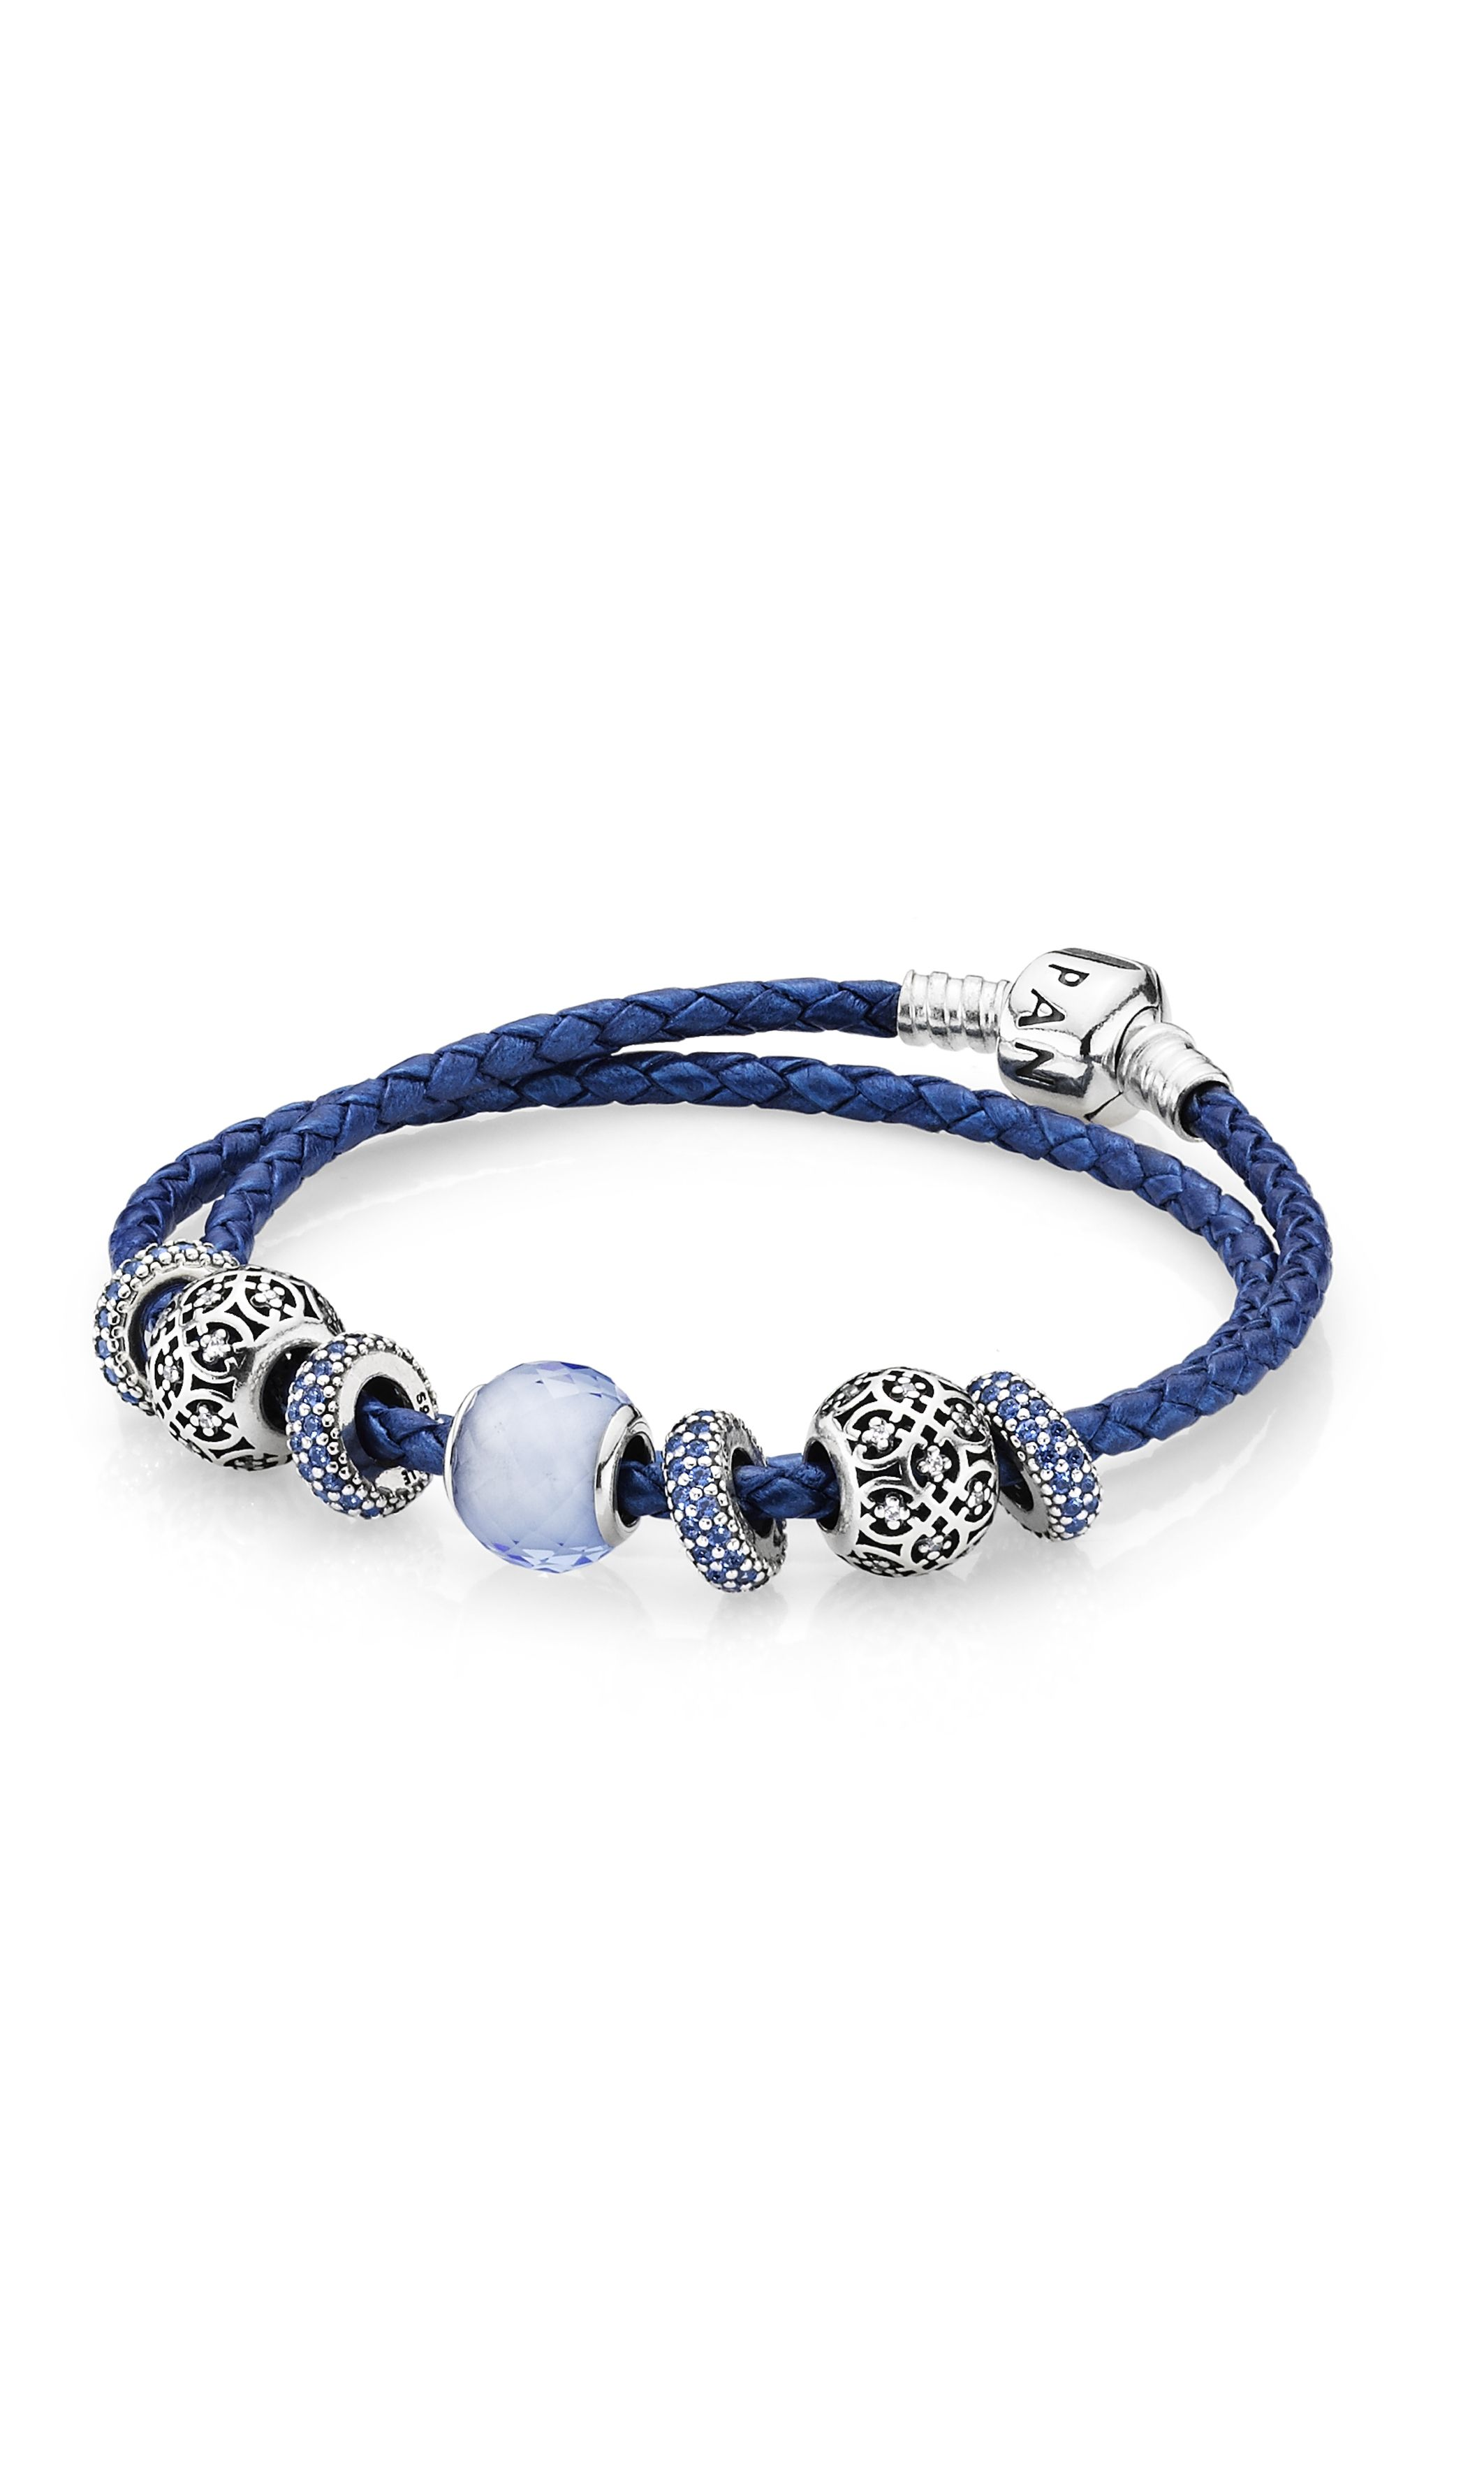 Style the new metallic blue woven leather bracelet with charms in matching blue shades. #